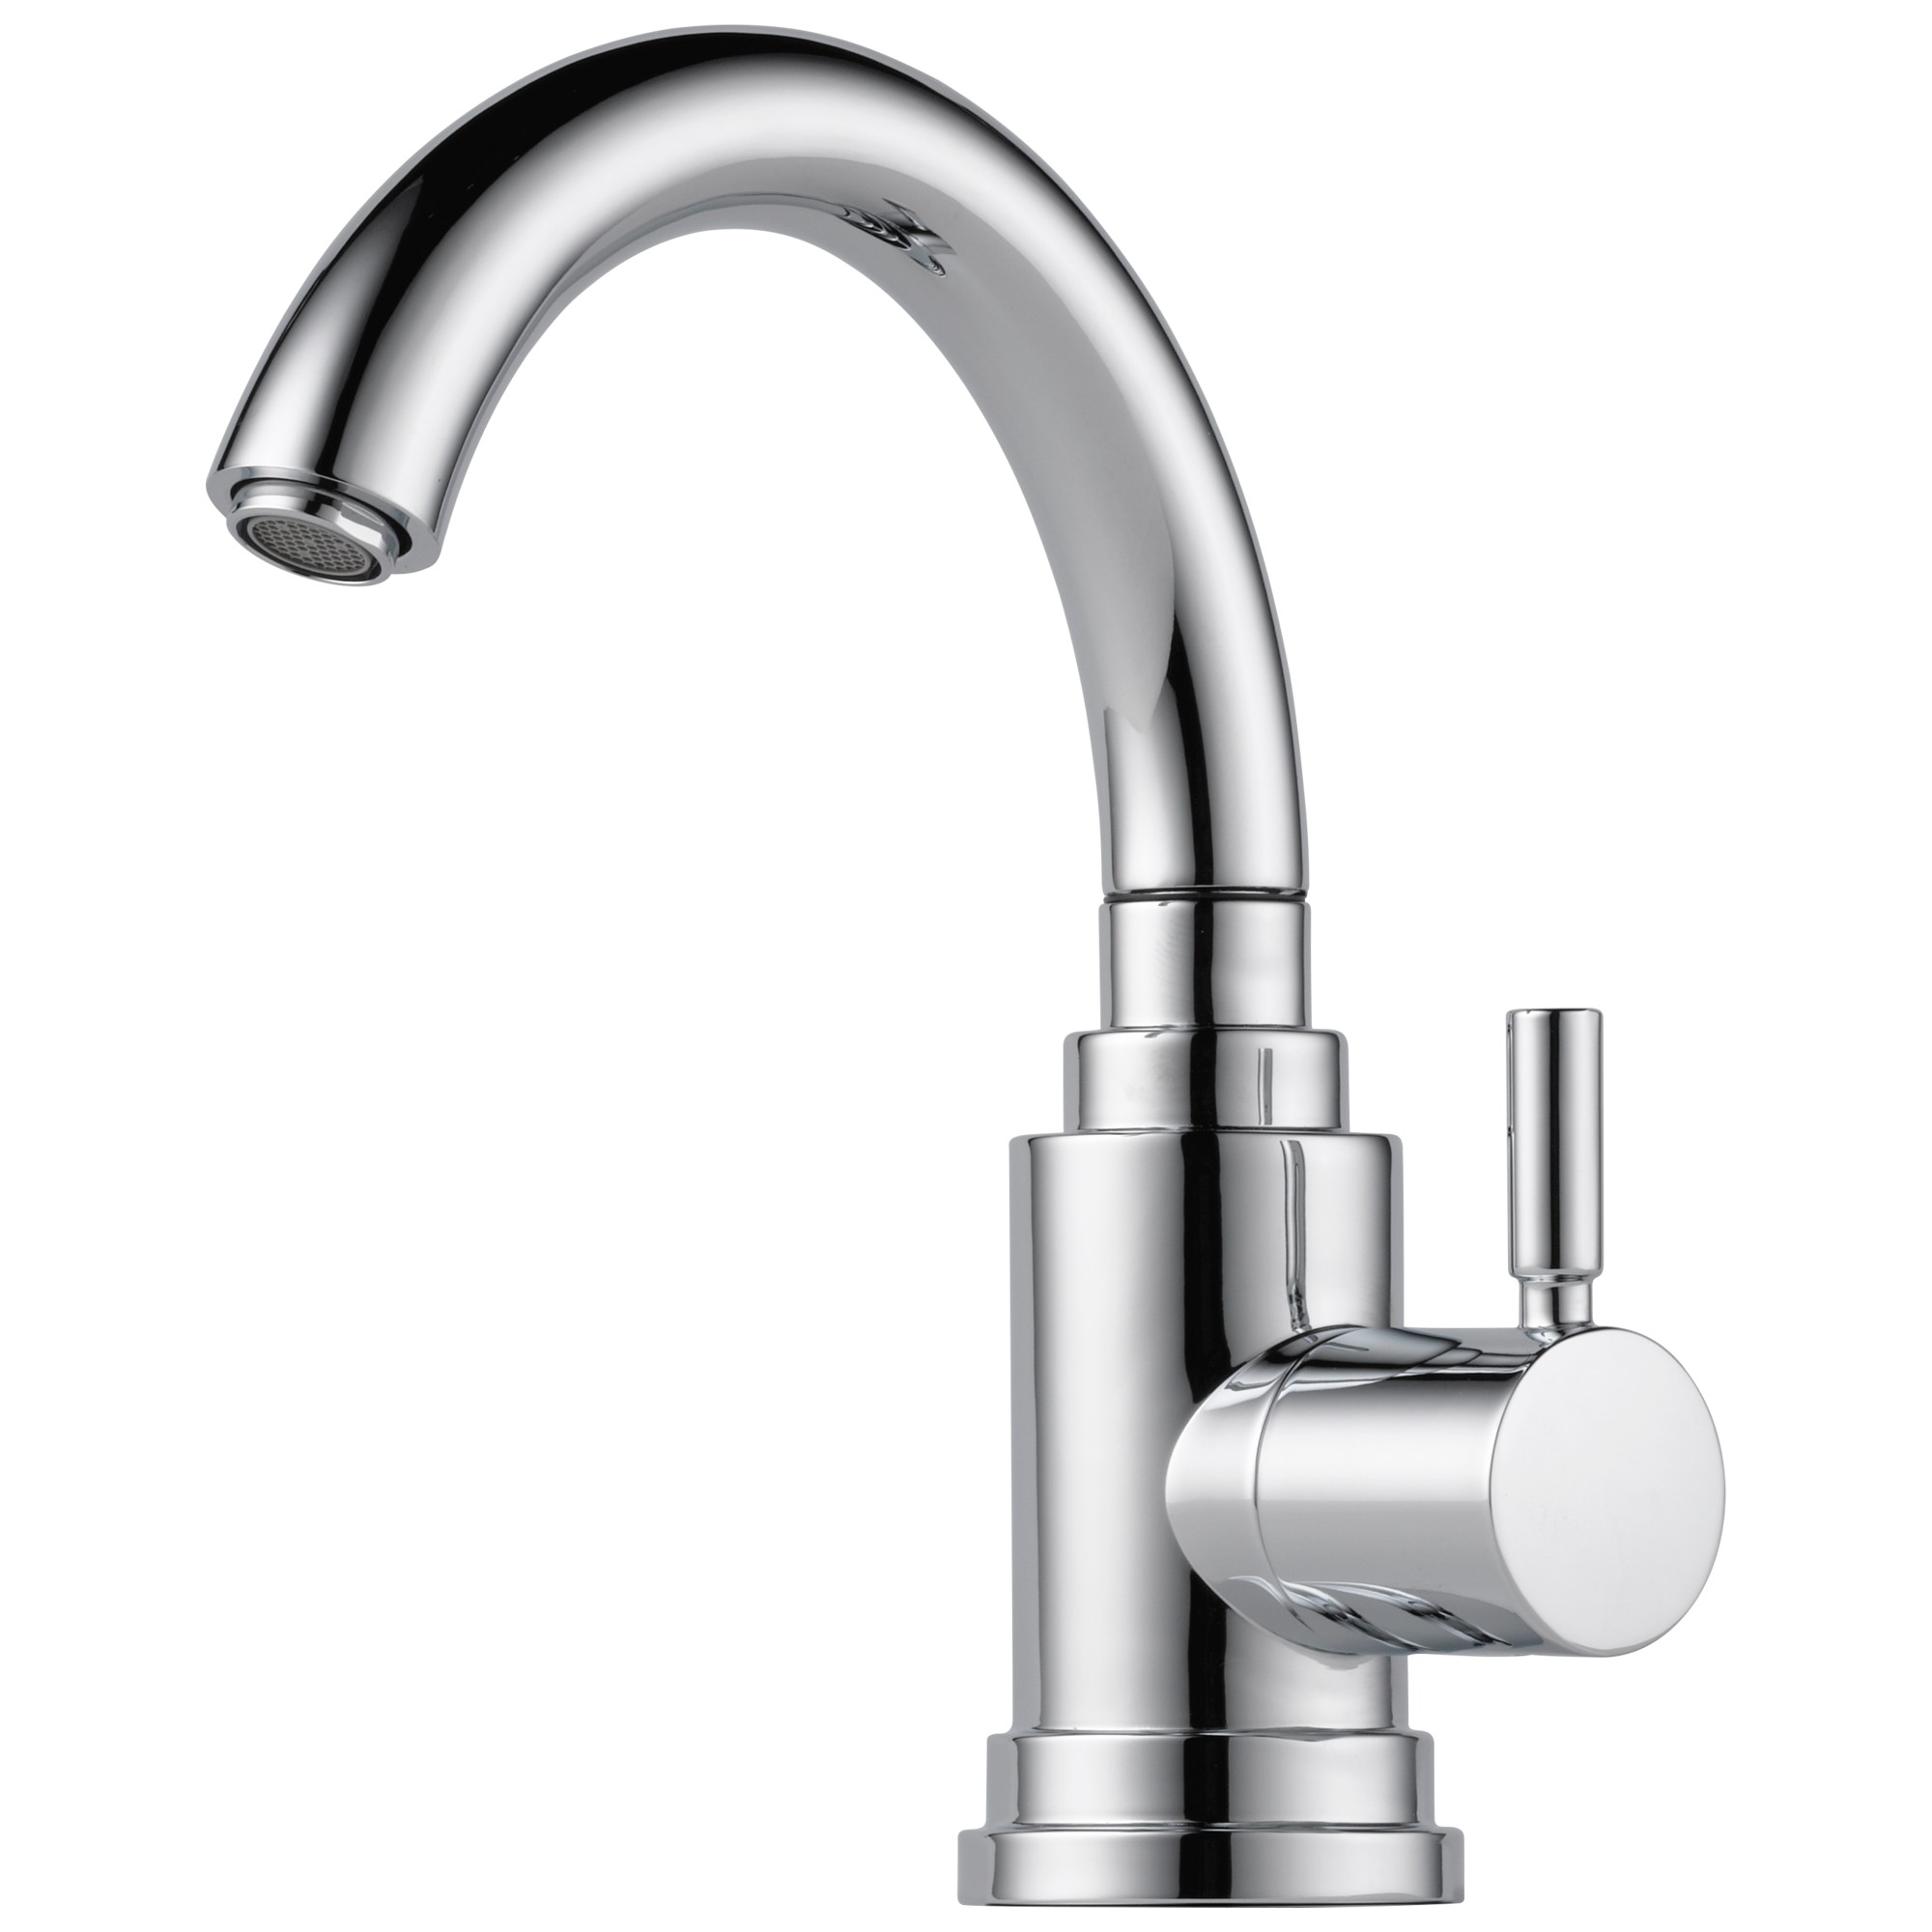 Brizo 61320LF-PC Other Beverage Faucet - Chrome